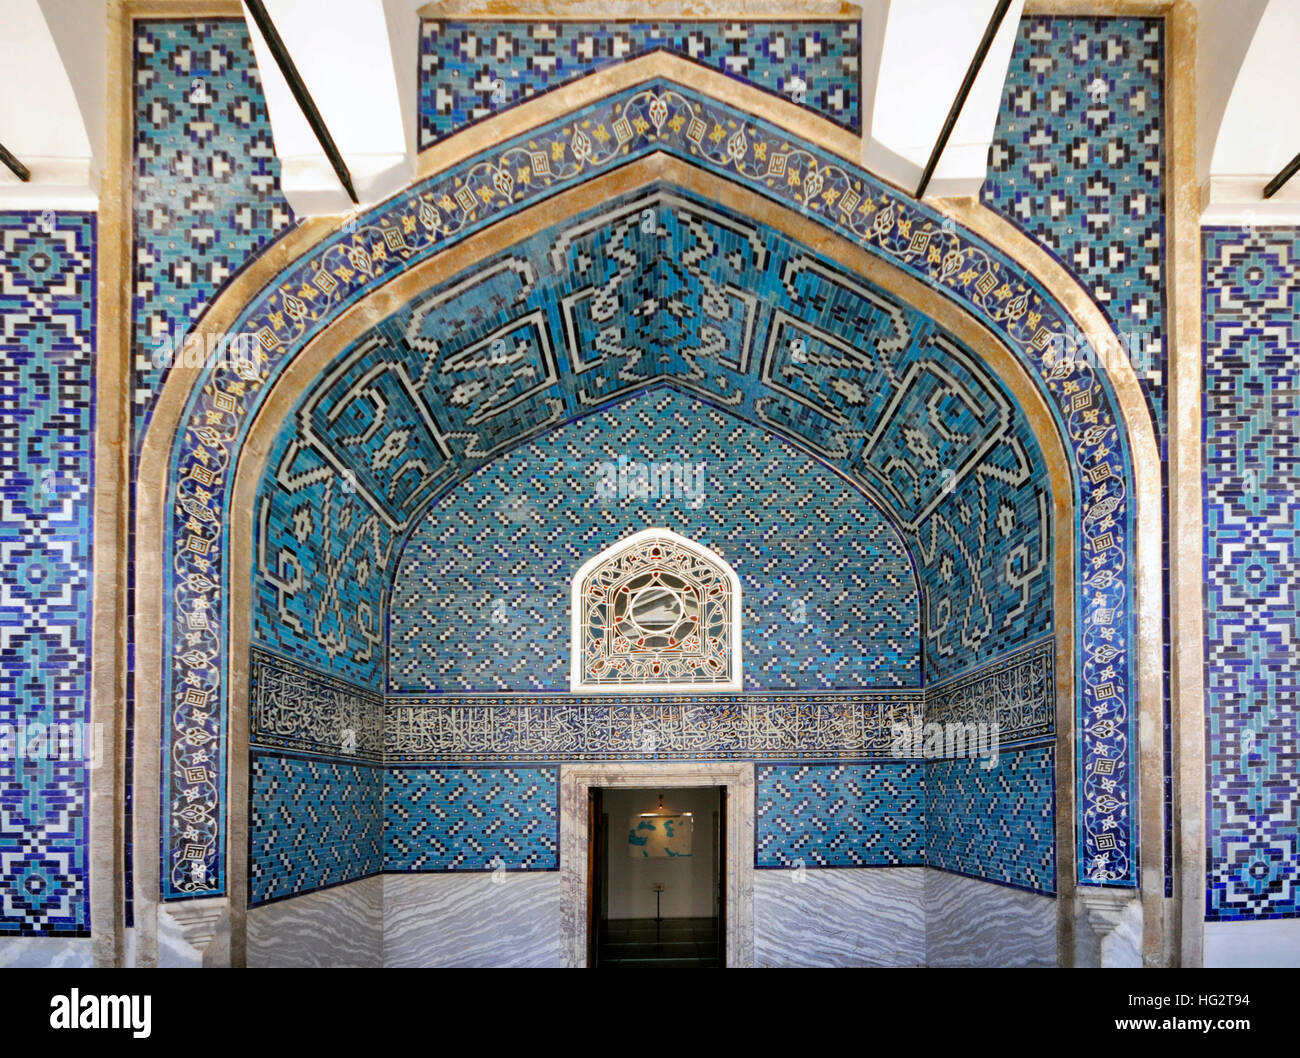 The Tiled Kiosk is a pavilion set within the outer walls of Topkapı Palace and dates from 1472 as shown on the tile - Stock Image